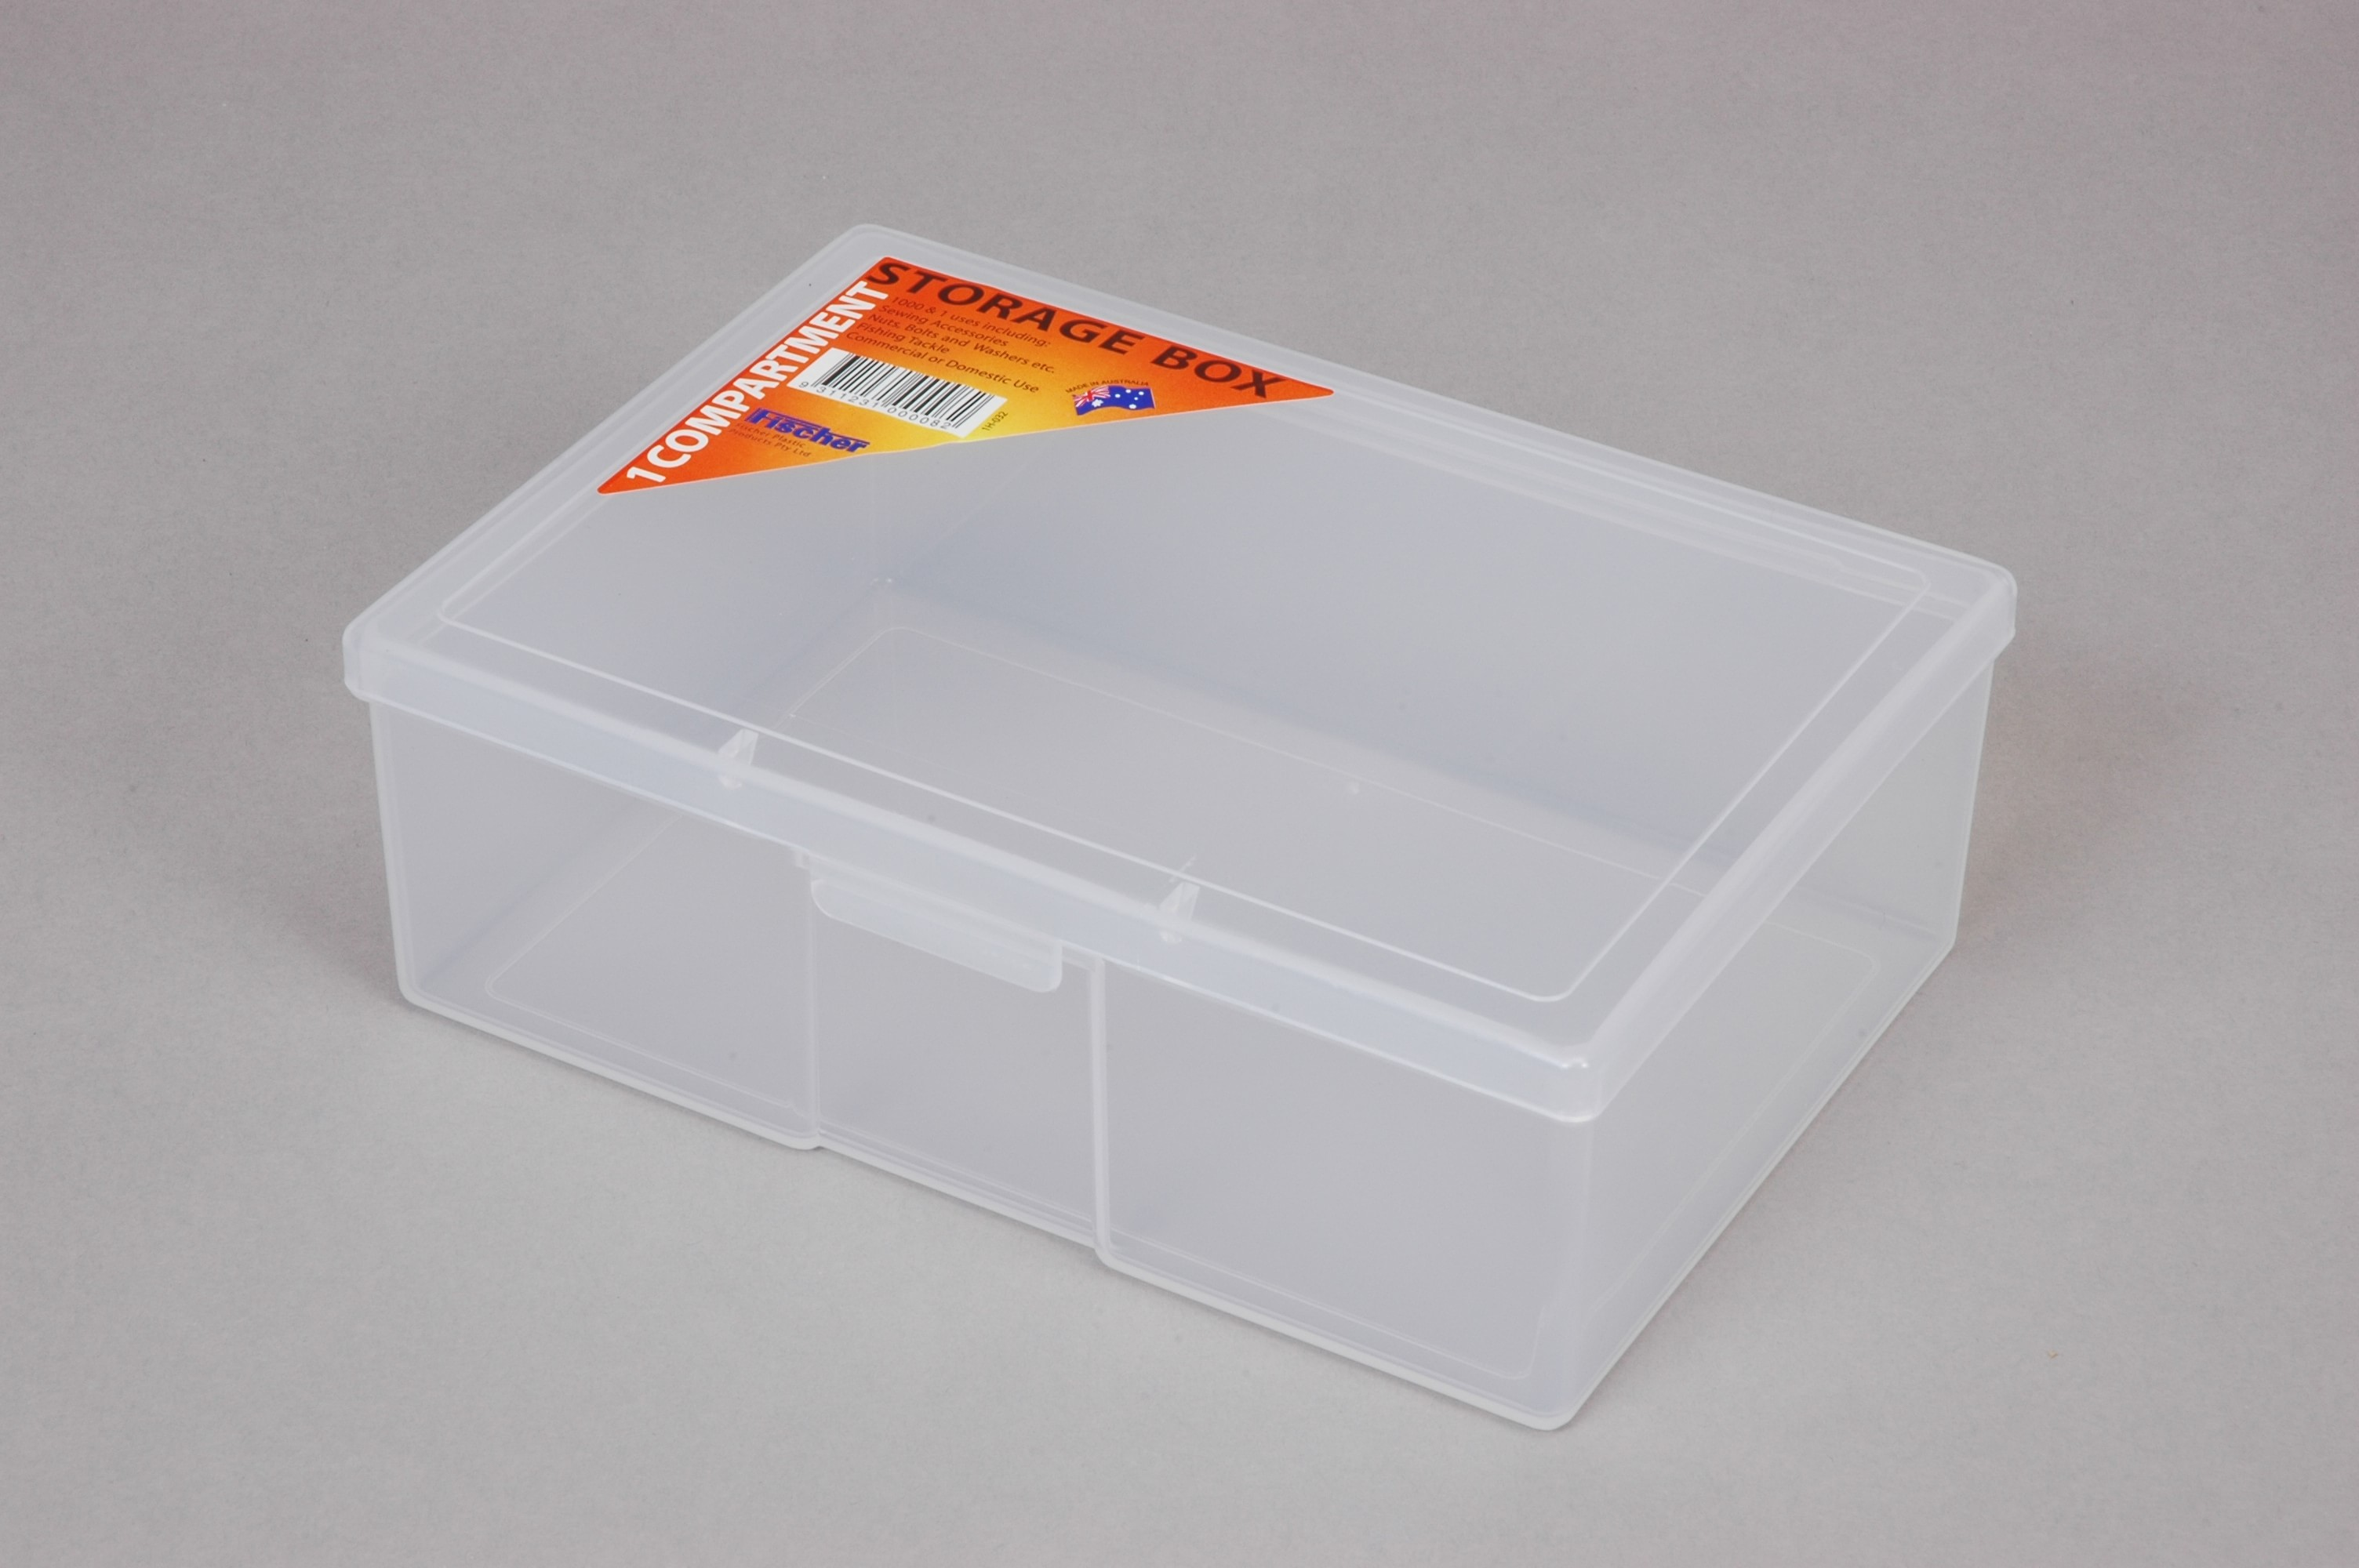 ACCESSORY BOX 1 COMP MED DEEP CLEAR (2145)